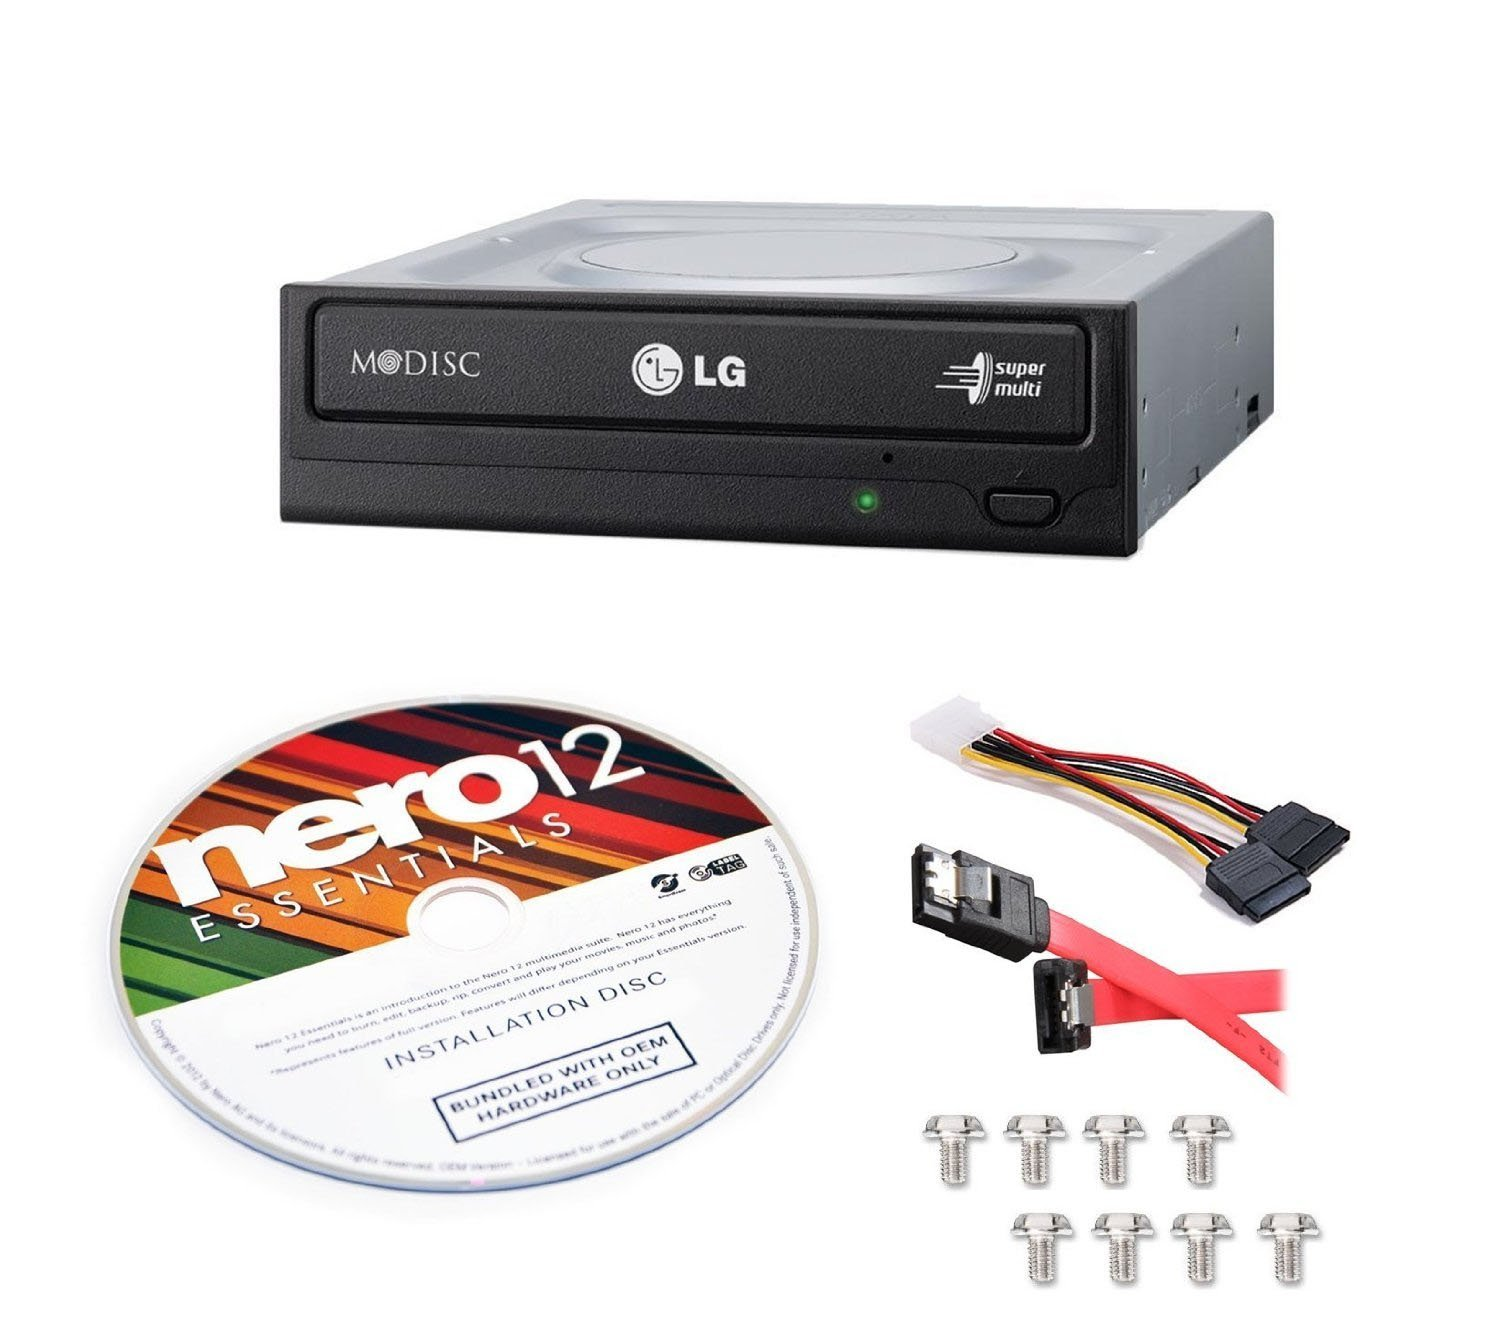 LG Internal 24x Super Multi with M-DISC  Support DVD Burner (GH24NSC0B) Bundle with Nero 12 Essentials Burning Software + Cable Kit